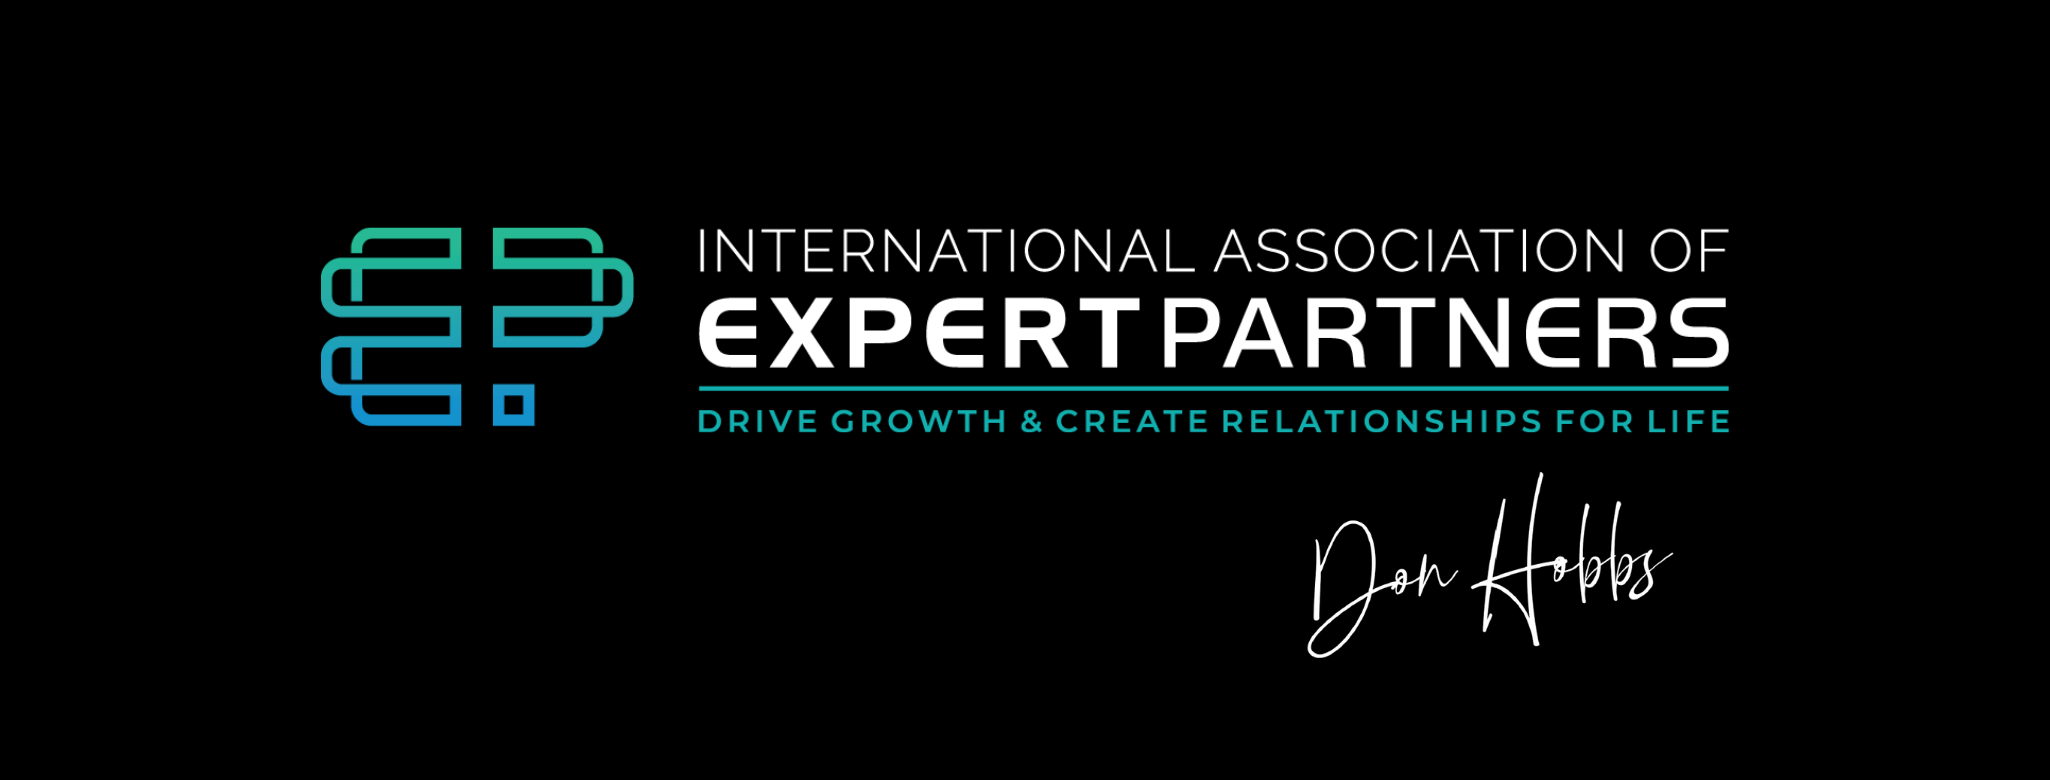 International Association of Expert Partners reviews | 12600 Hill Country Blvd, - Austin TX